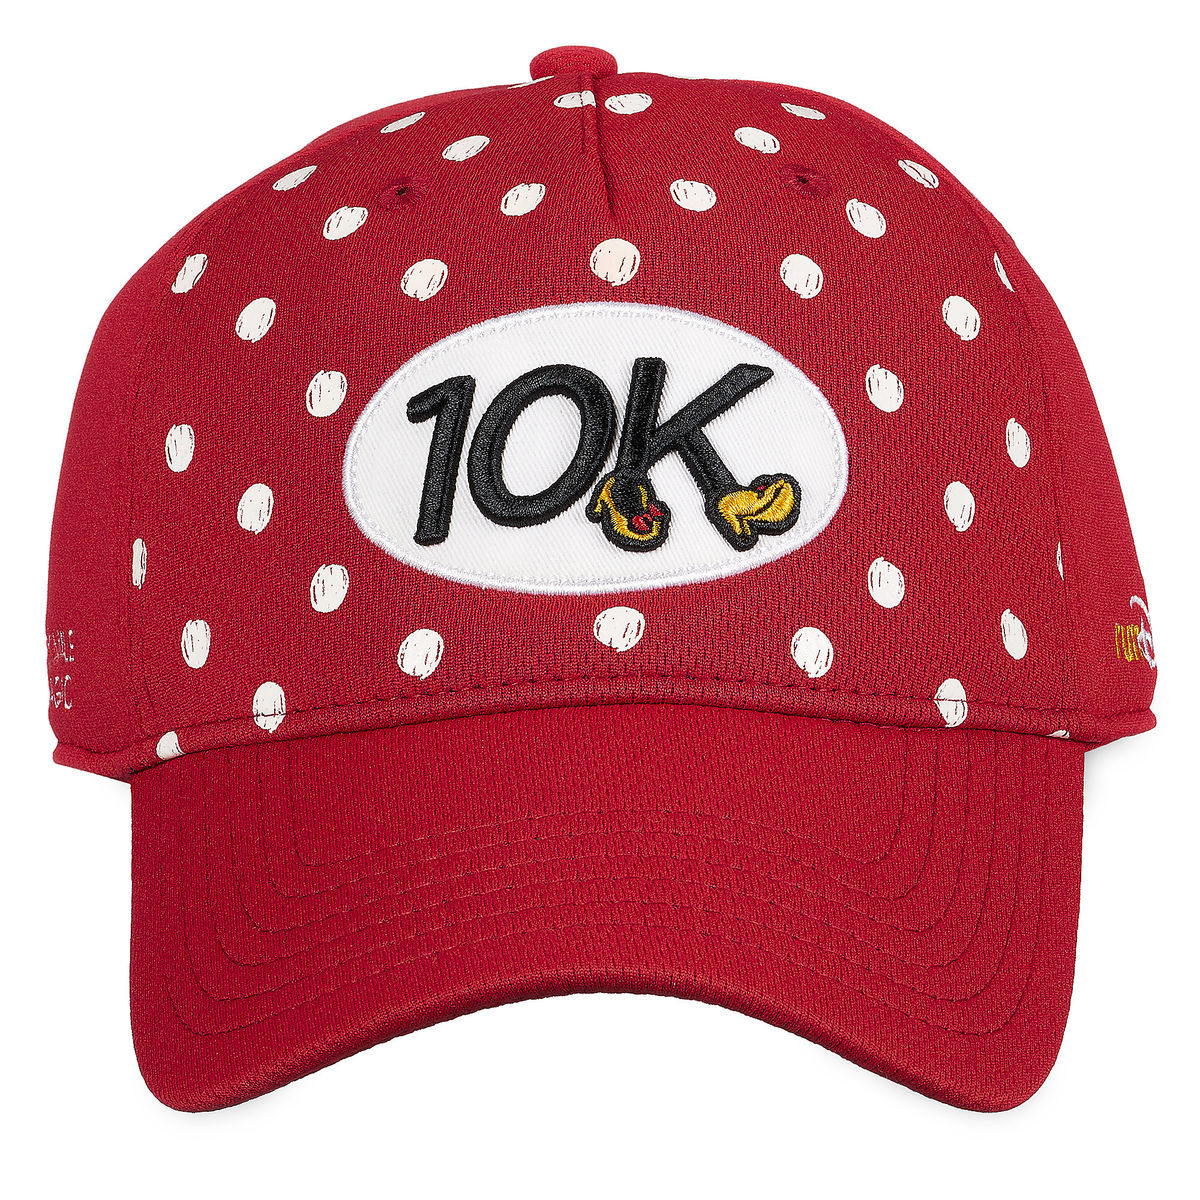 d129dff4c2b Product Image of Minnie Mouse runDisney Baseball Cap for Adults - 10K - Red    1